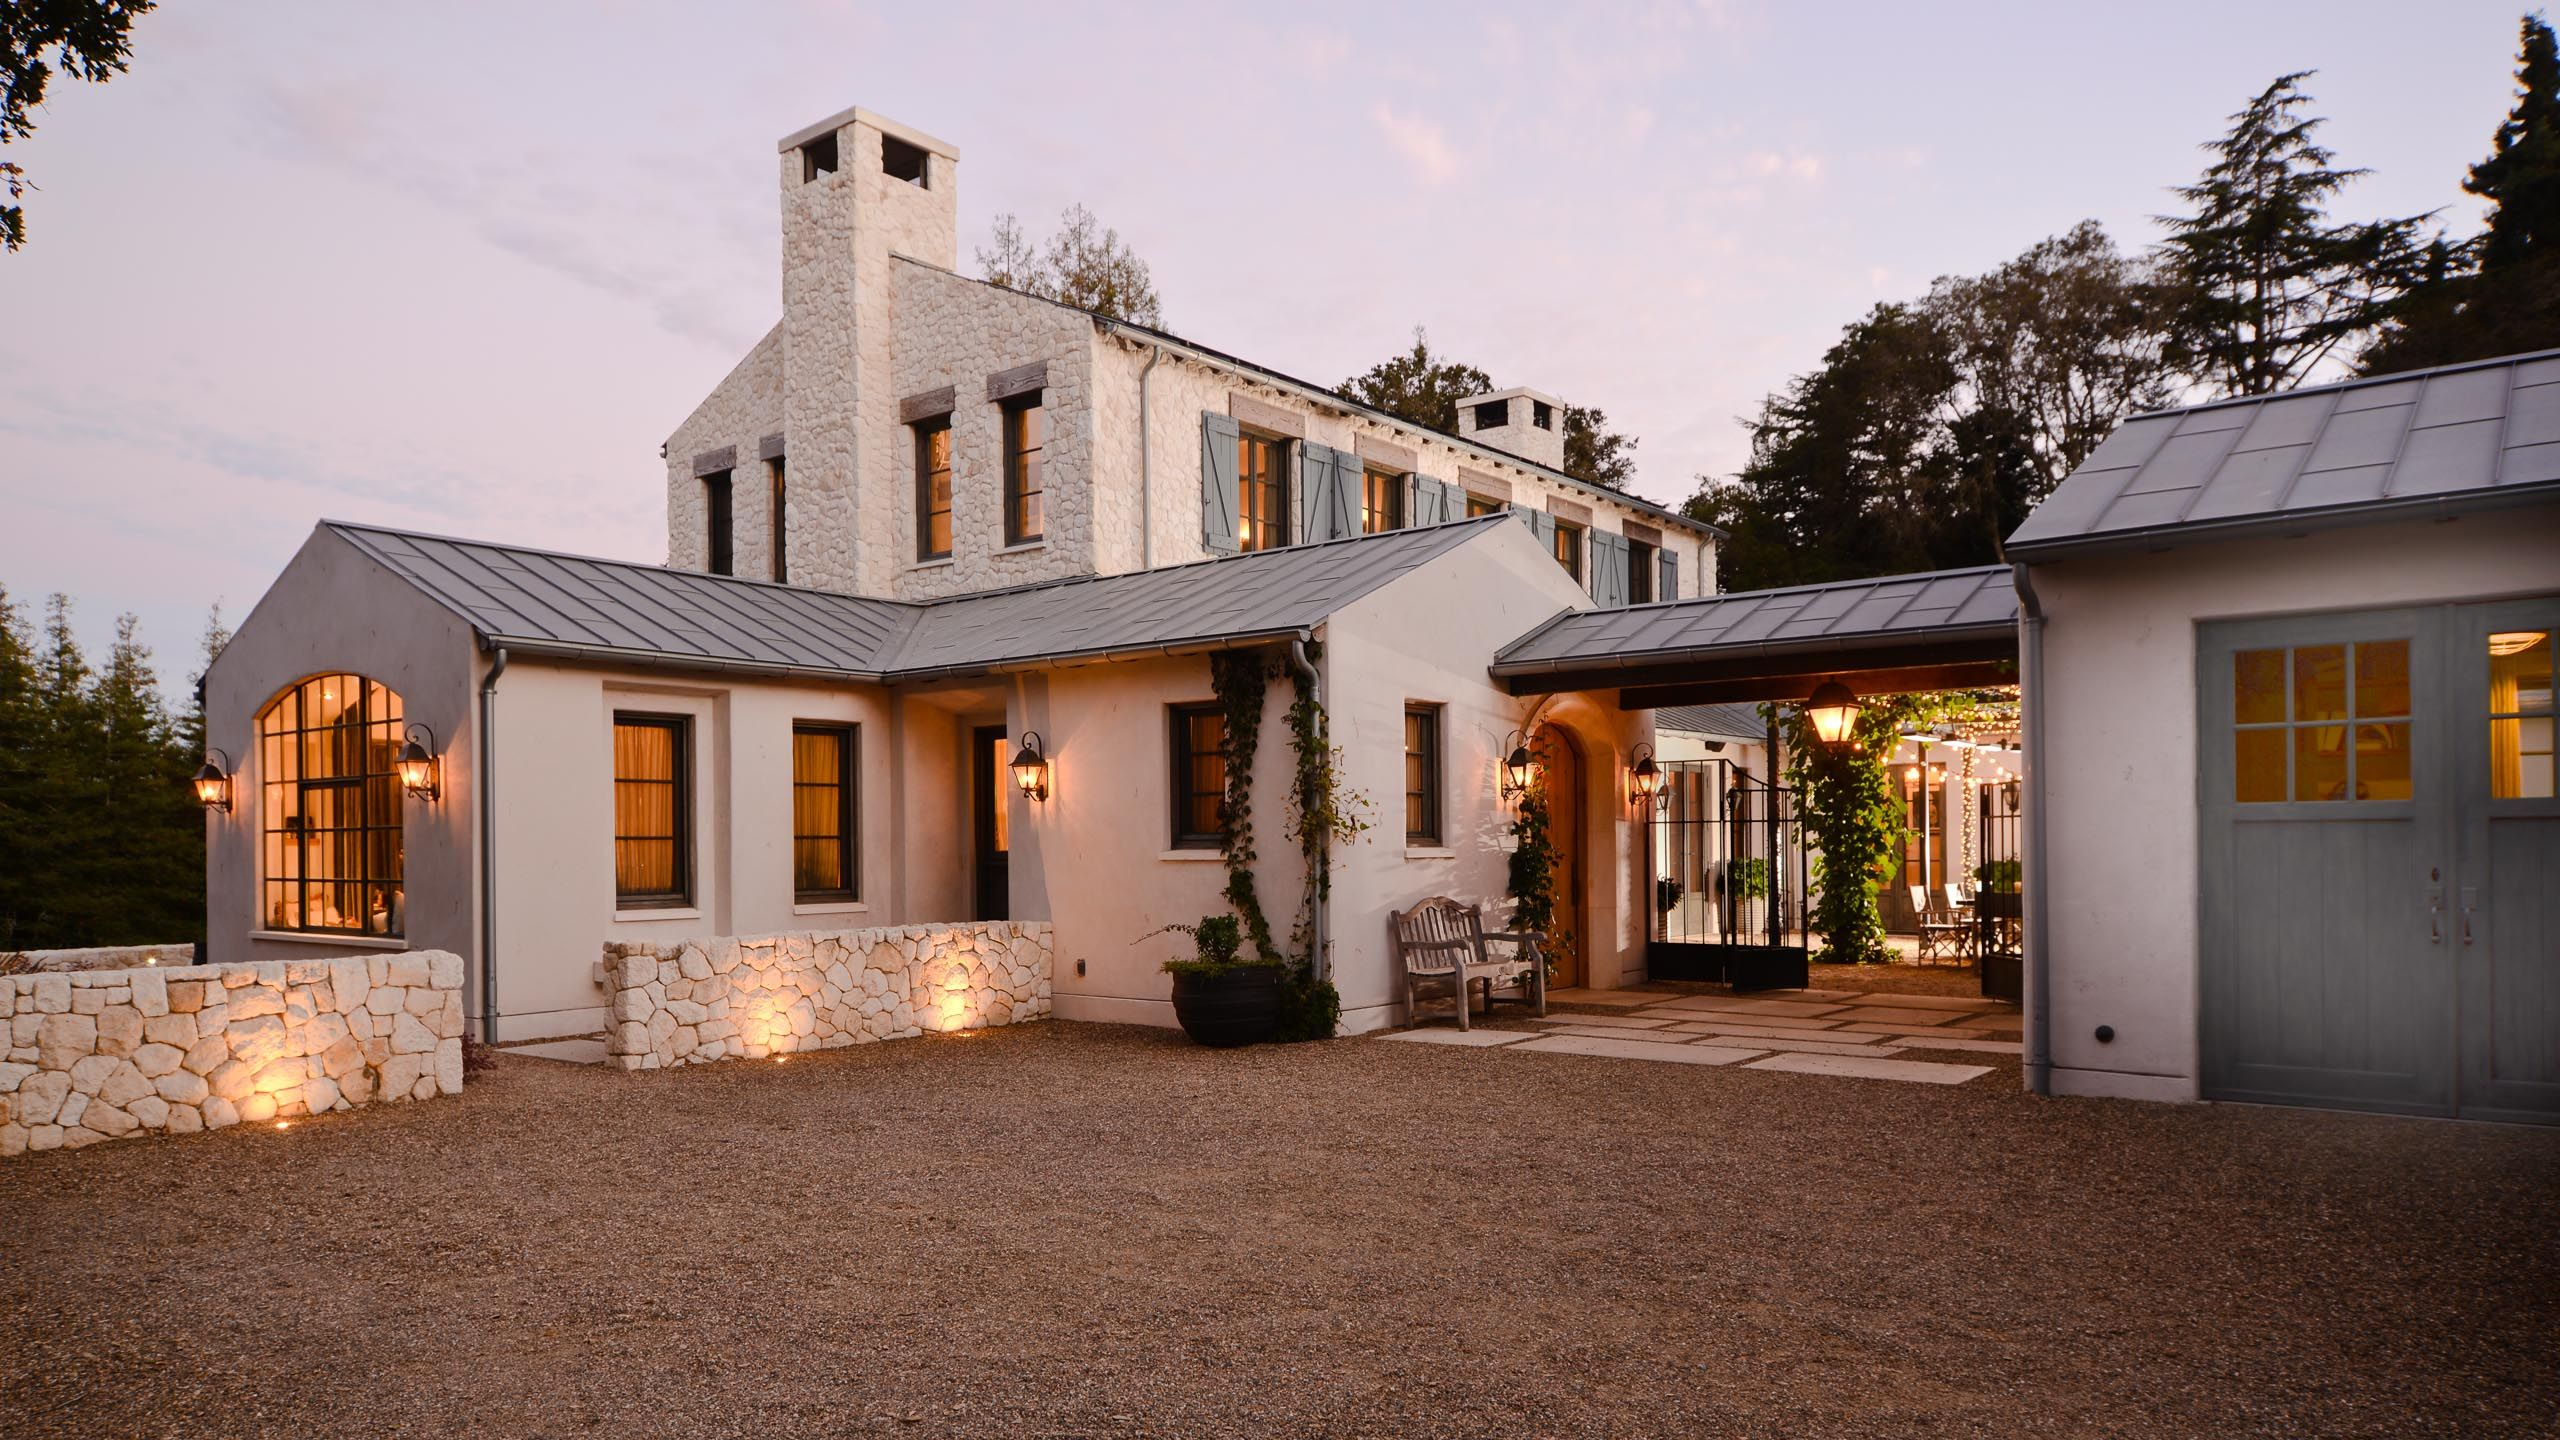 woodside stone house with images contemporary on beautiful modern farmhouse trending exterior design ideas id=15051